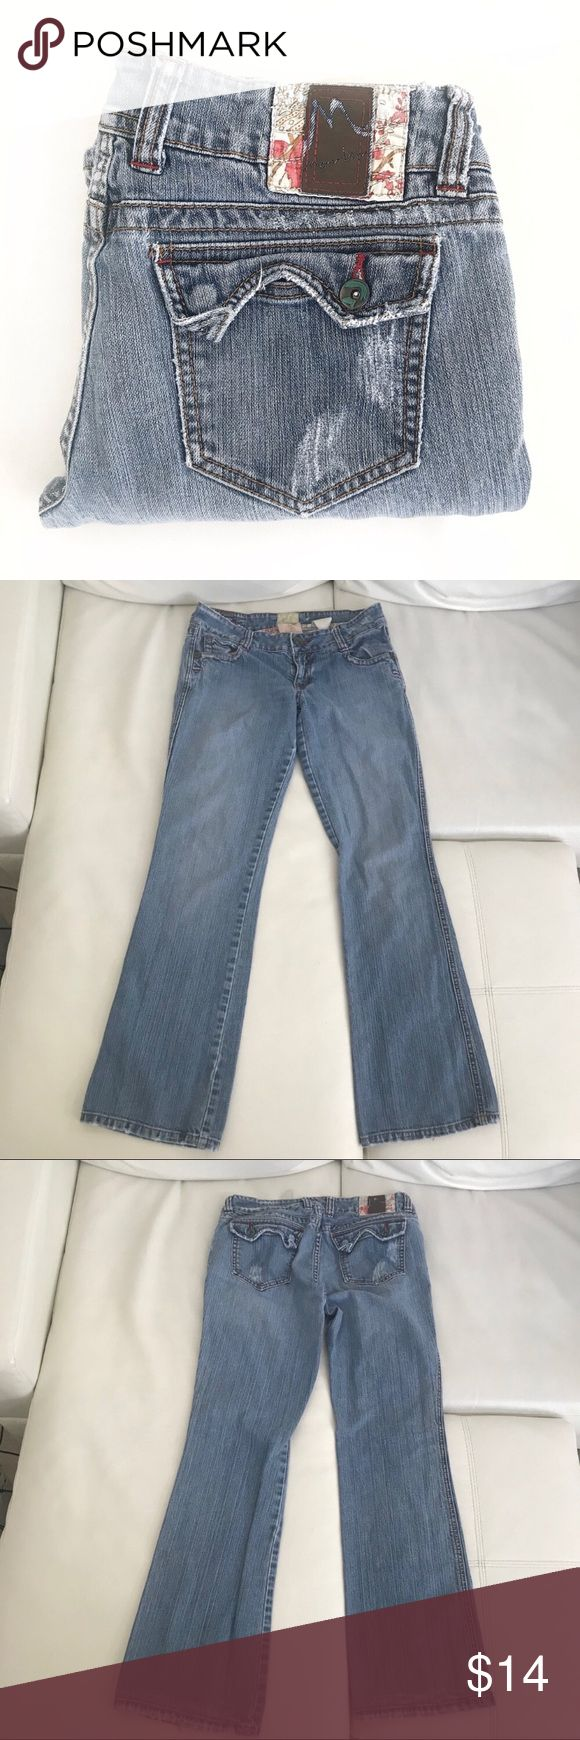 """Marlow vintage original wide leg flare jeans sz 29 98% cotton, 2% spandex made in Hong Kong  Waist 29"""" Rise 8"""" Inseam 32""""   Not what you're looking for? Feel free to browse my closet for other occasions: Winter, spring, summer, fall, birthday, New Year's Eve, Valentine's Day date, Graduation, Prom, Purim, St. Patrick's Day, Easter, Earth Day, Cinco de Mayo, Mother's Day, EDC, Coachella, Memorial Day, Comic Con, 4th of July, Labor Day, Thanksgiving, Halloween, Christmas Marlow Jeans Flare…"""